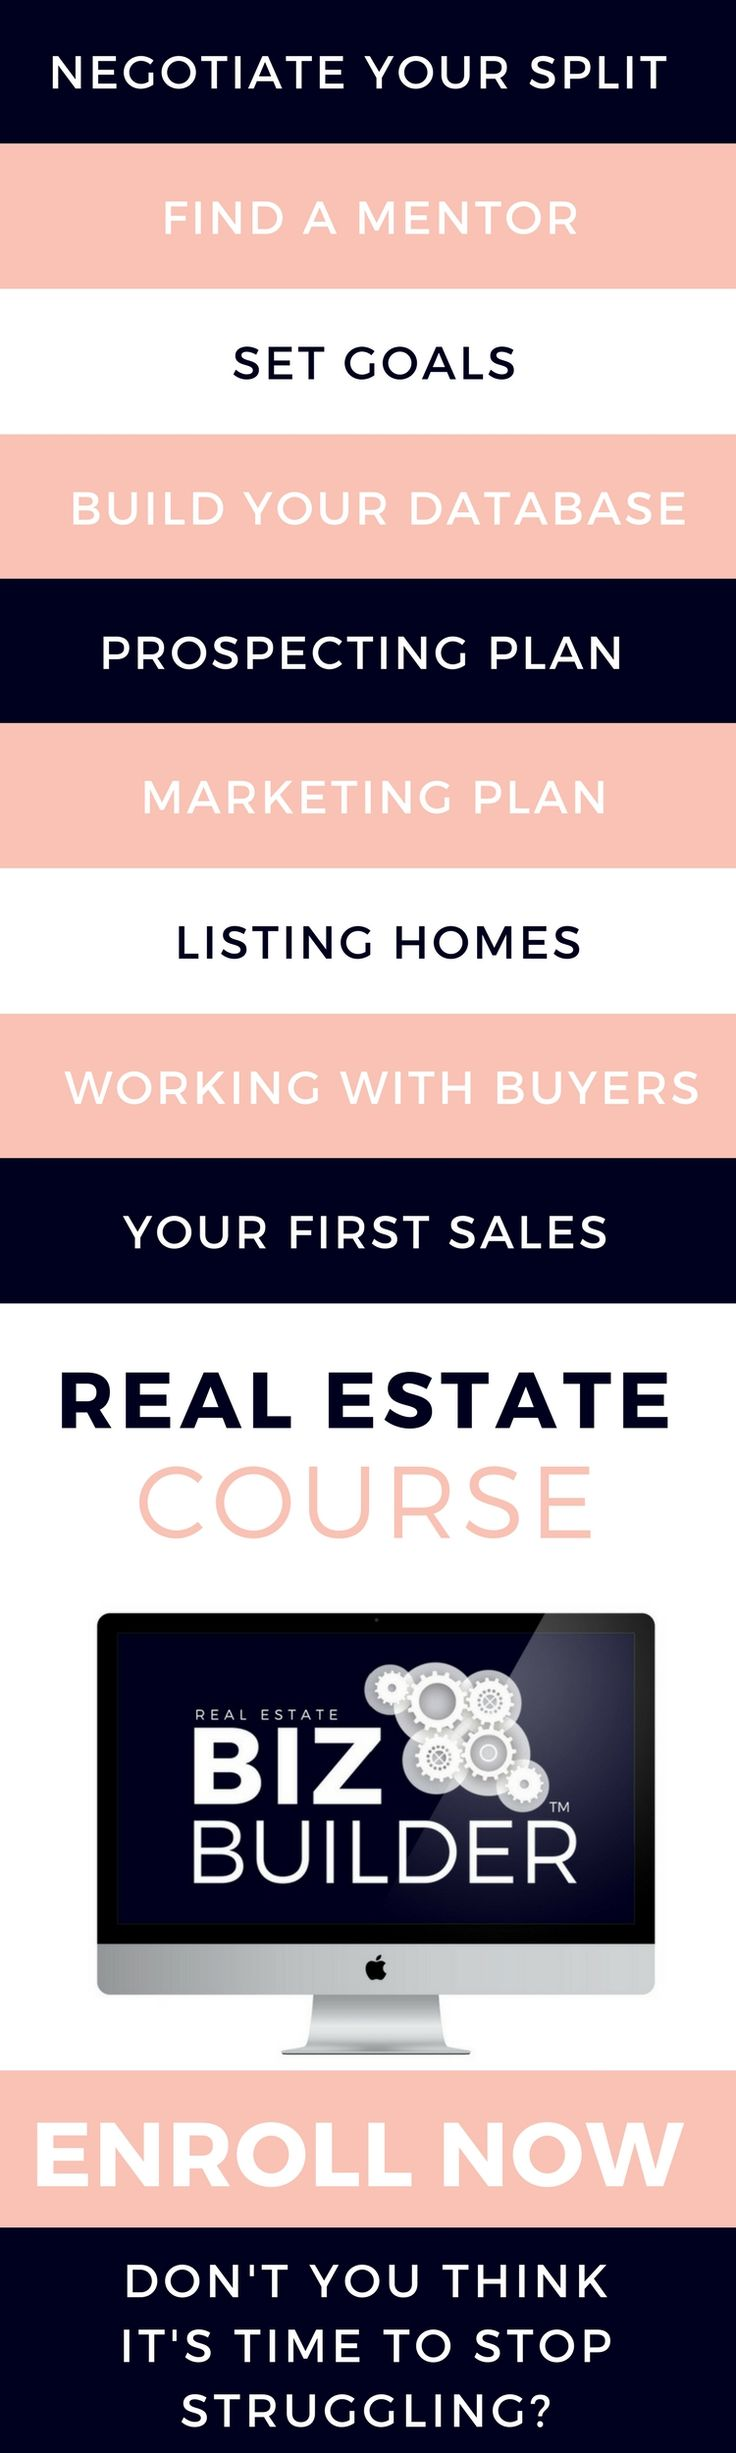 real estate agent, realtor, marketing tips, social media, listing presentations, real estate leads, expireds, scripts, listing presentation template, templates, seller leads, buyer leads, real estate courses, negotiation tips, open house, open house tips,